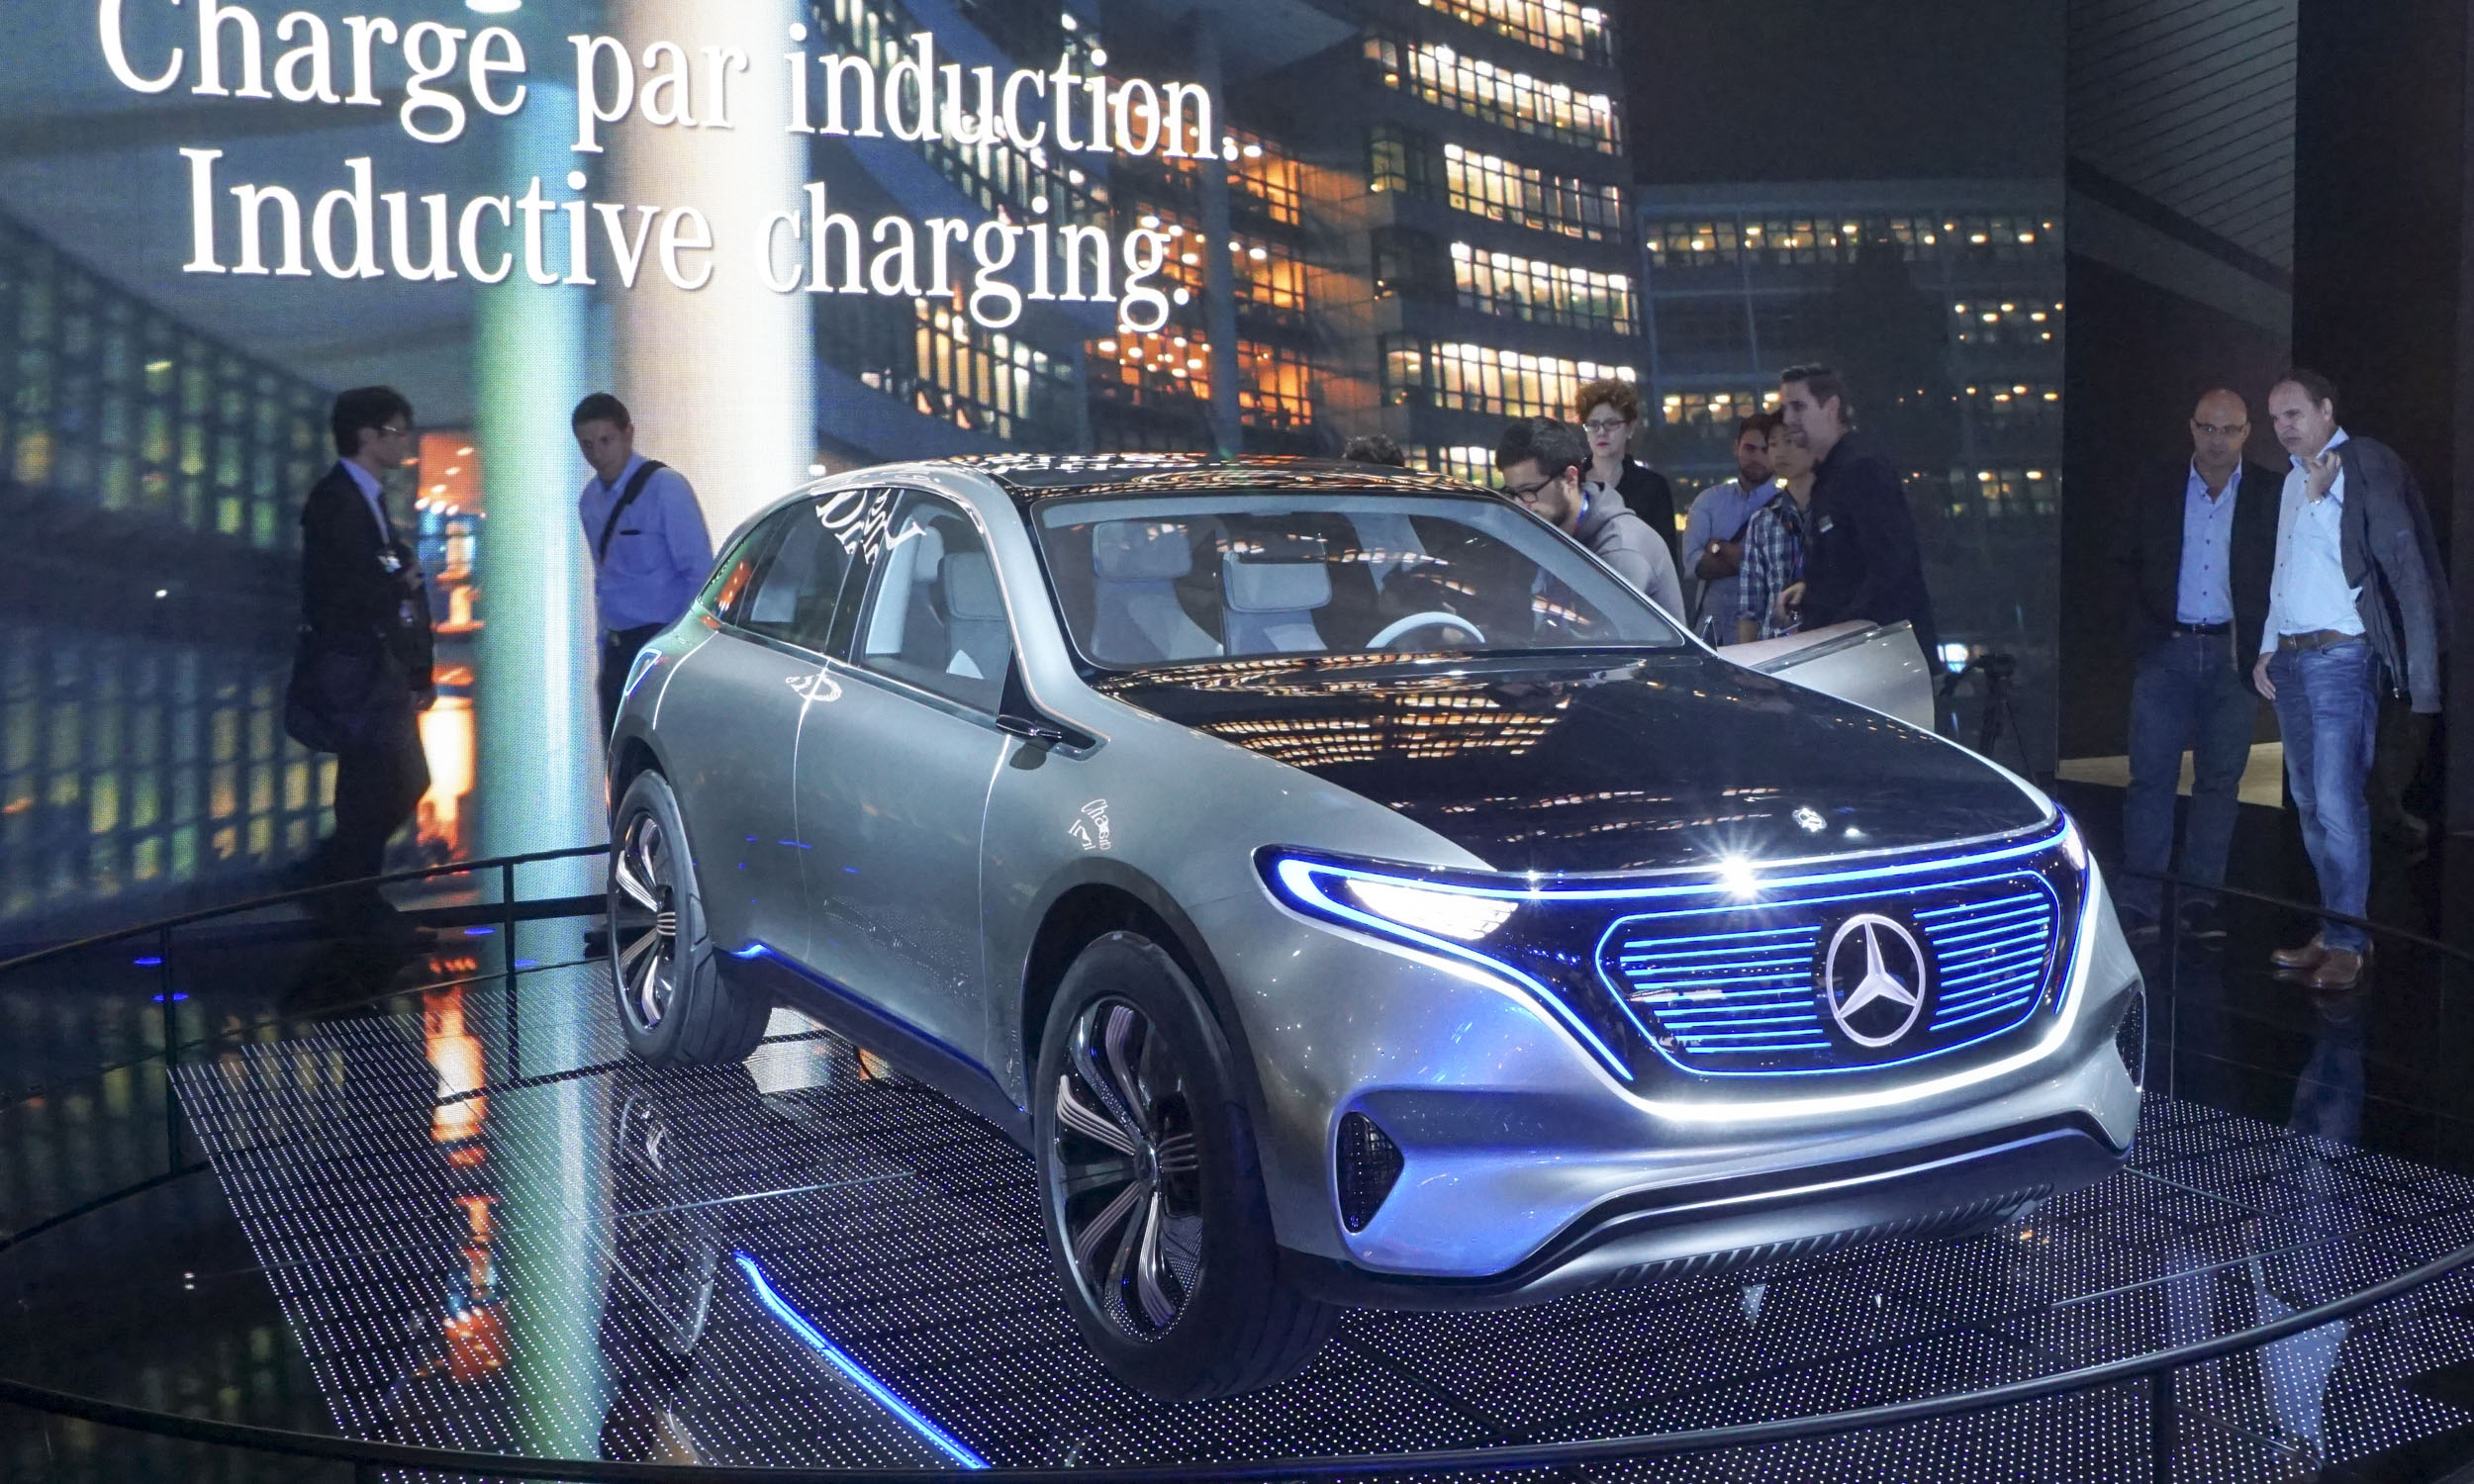 http://autocontentexp.com/wp-content/uploads/2016/10/Mercedes-Benz-EQ5.jpg?utm_source=rss&utm_medium=rss